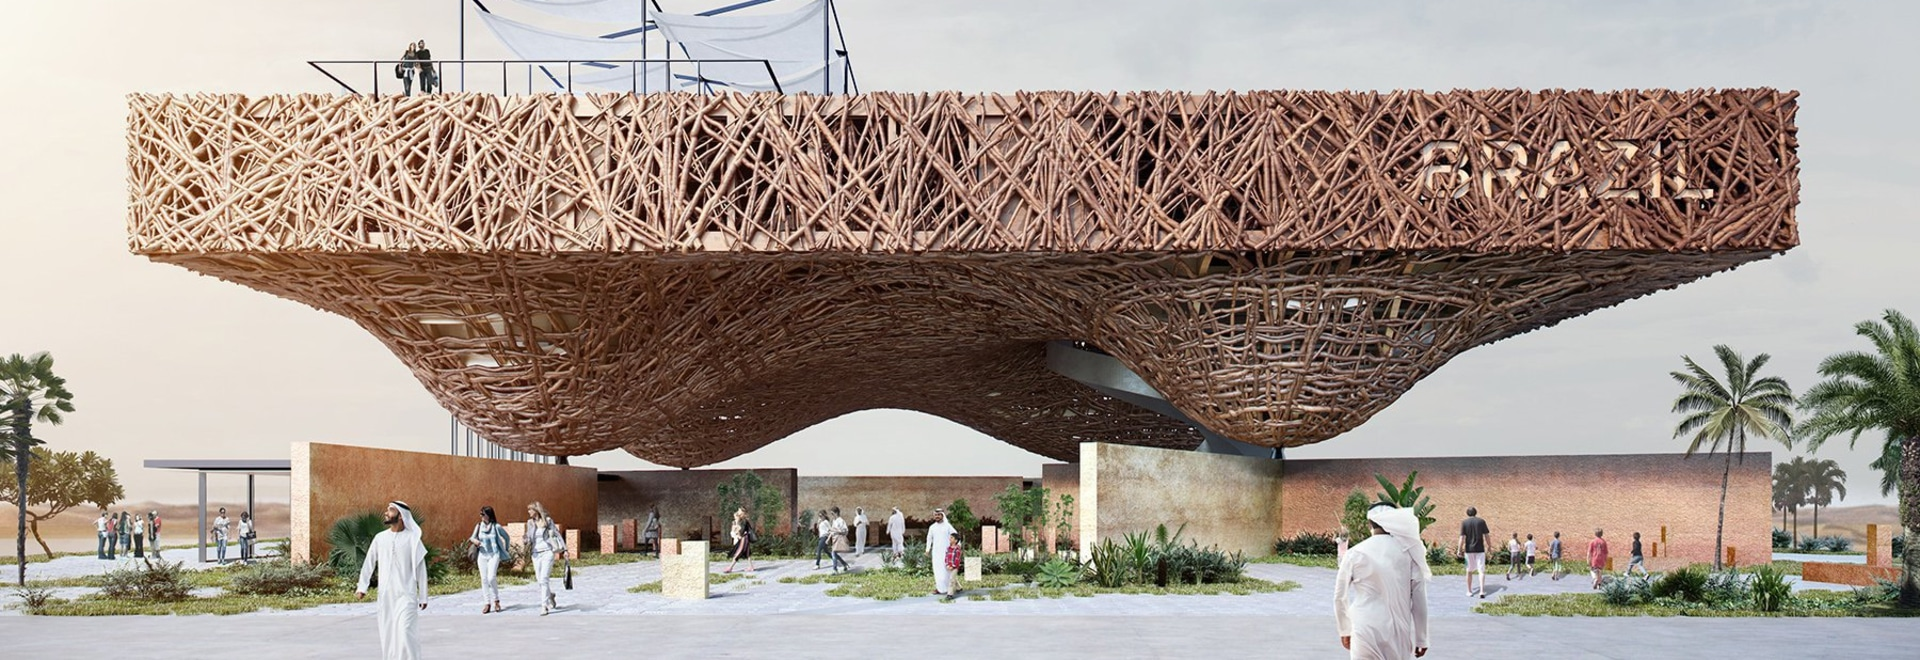 kozlowski + cardia propose a floating pavilion of tree branches for the dubai expo 2020